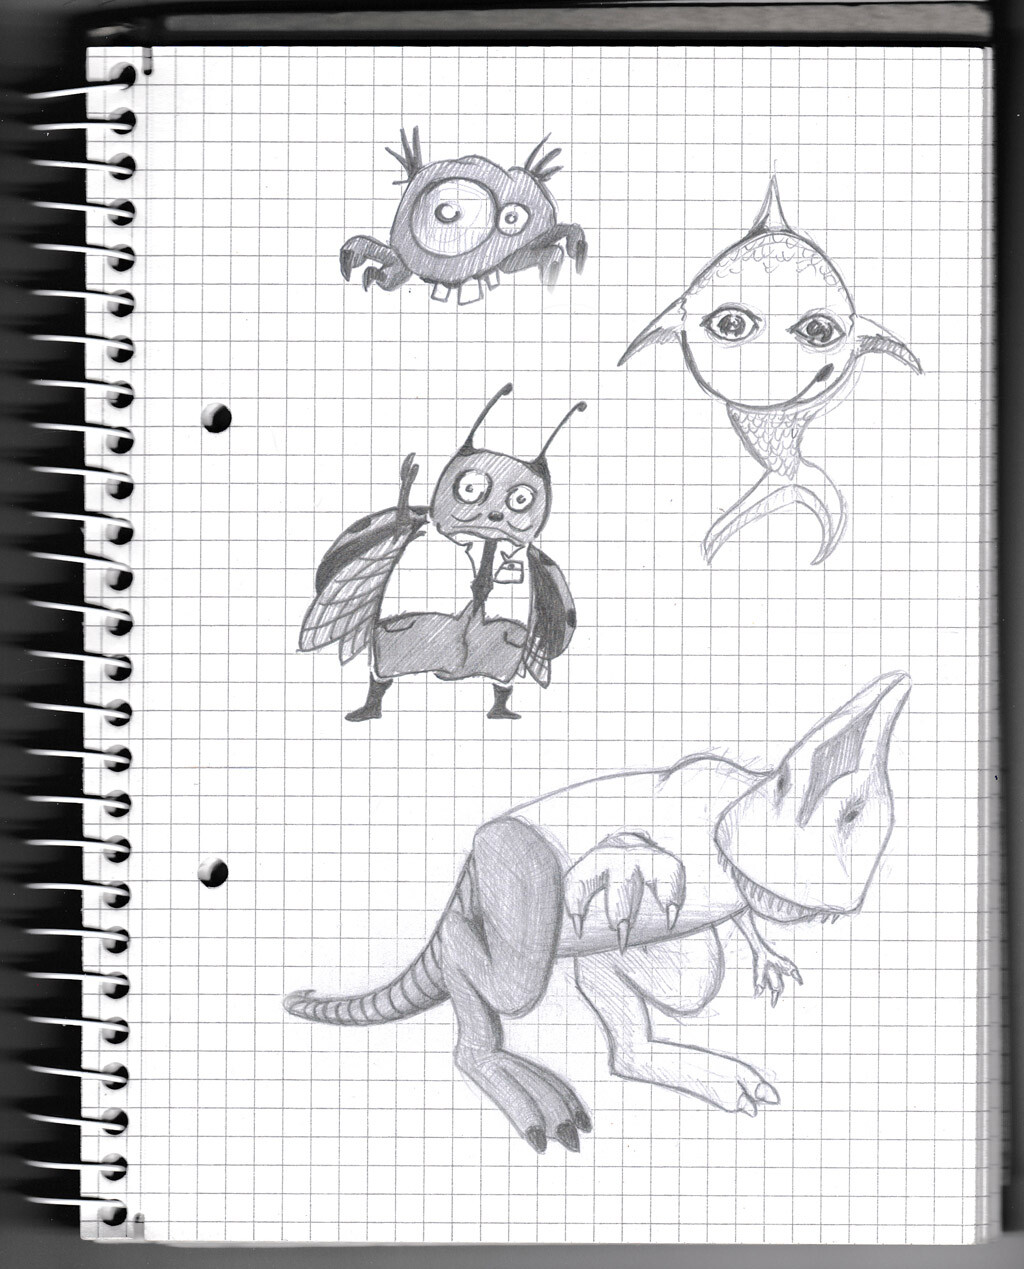 character, sketch, pencil, monster, creature,